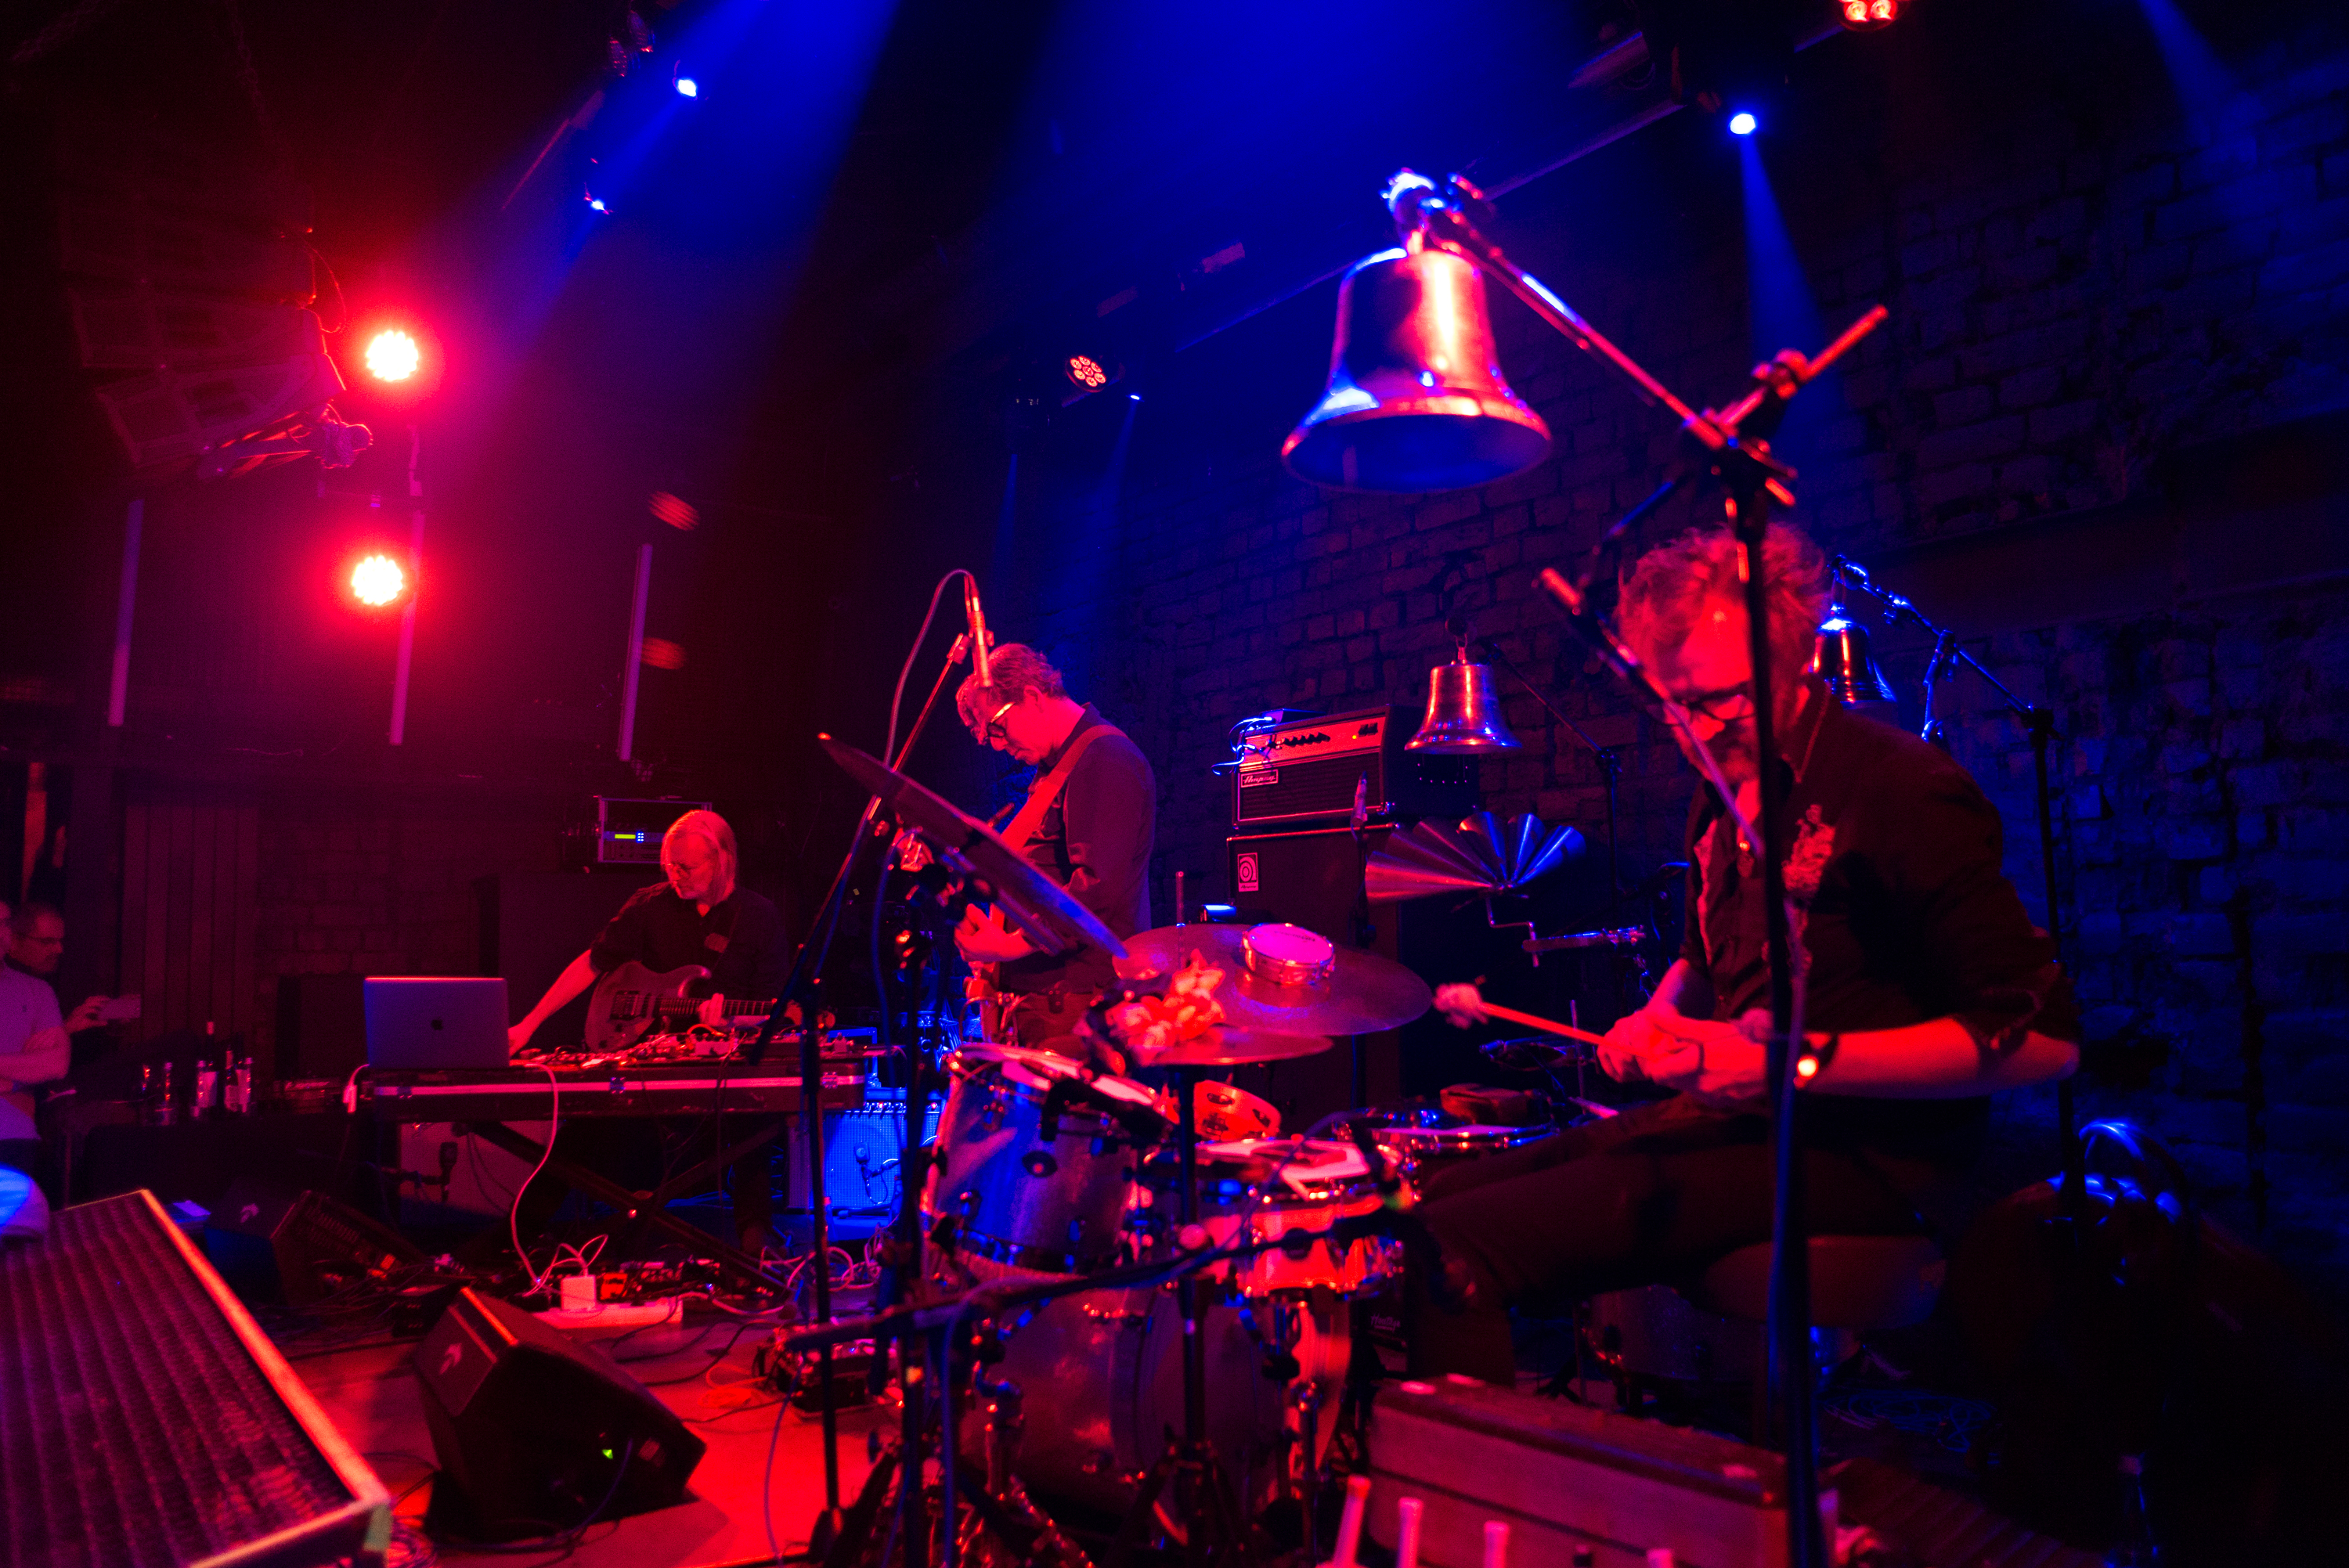 Eivind Aarset Trio @ Club Control, Bucharest, November 2018